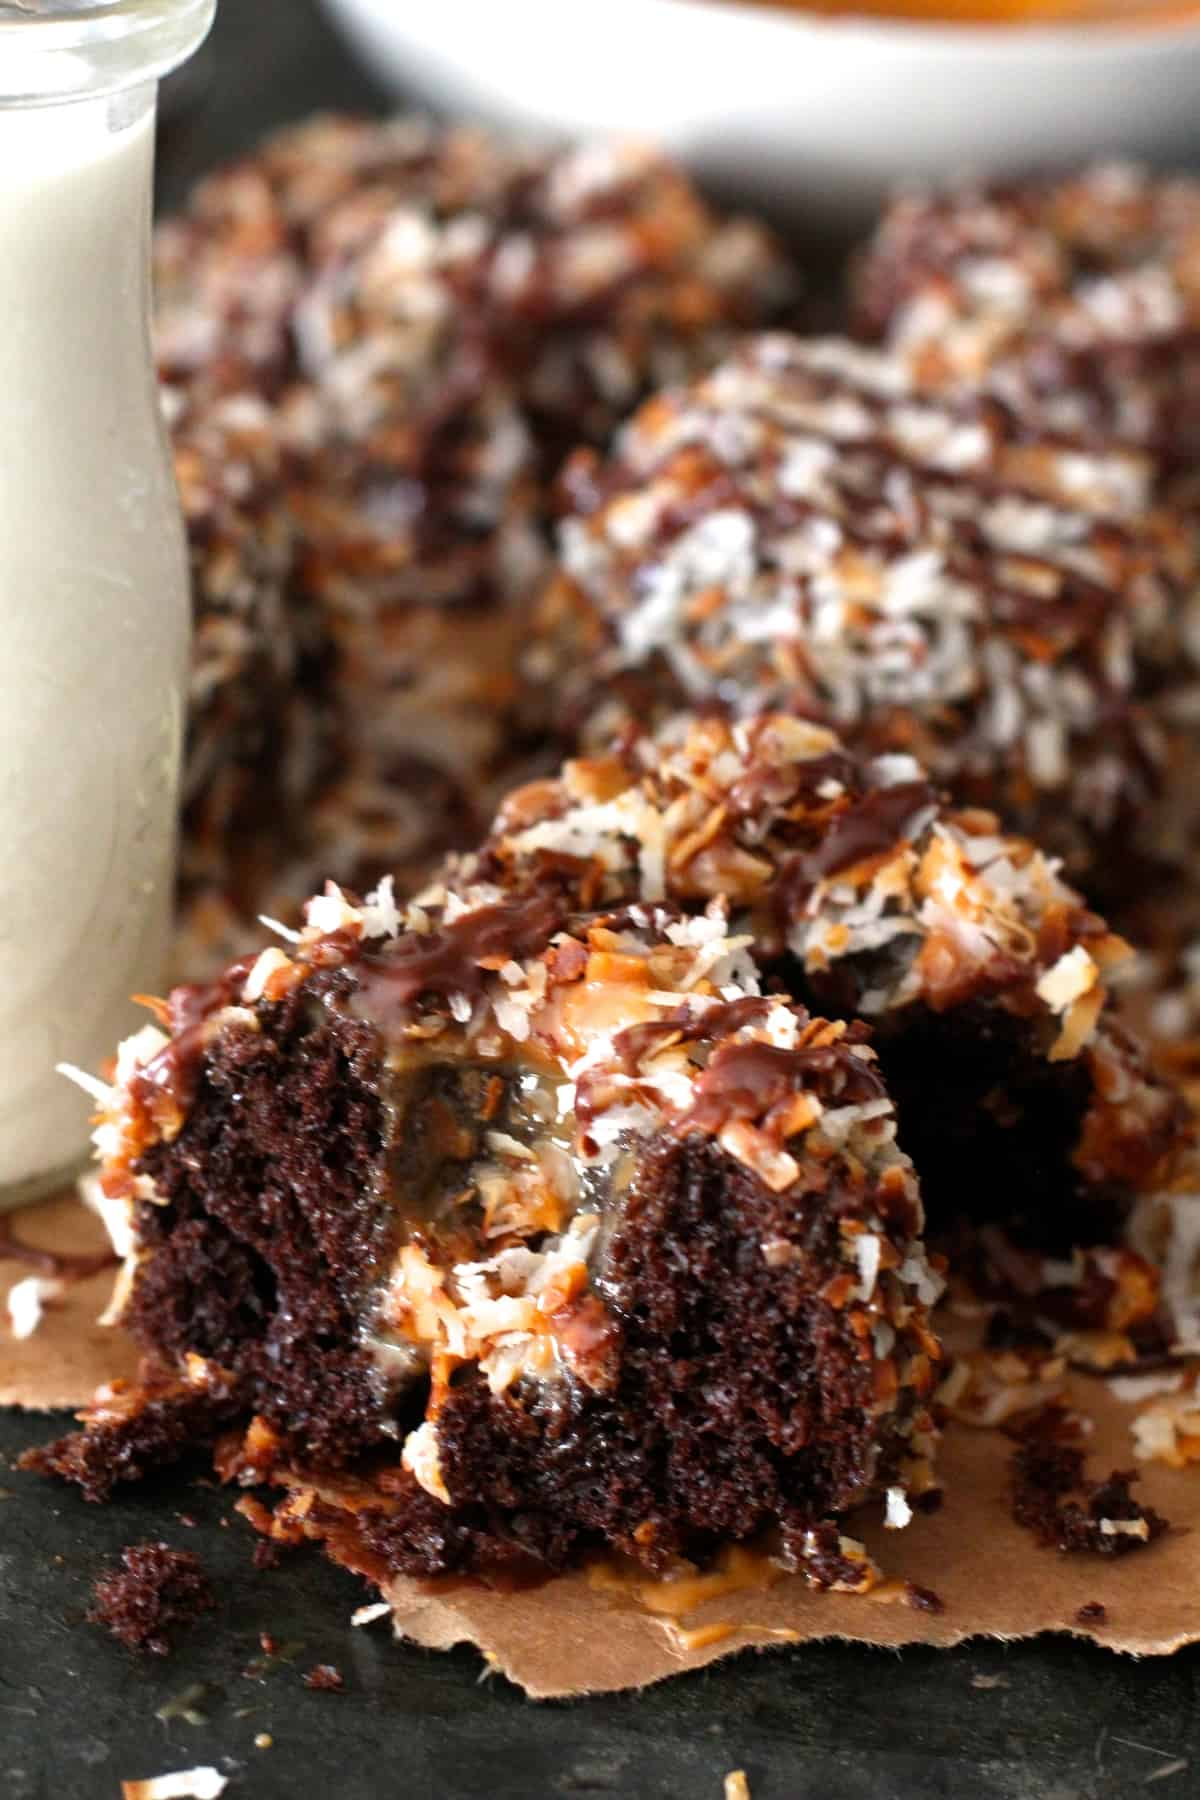 dense chocolate pound cake mixed with sweet caramel, rich chocolate fudge, and toasted coconut